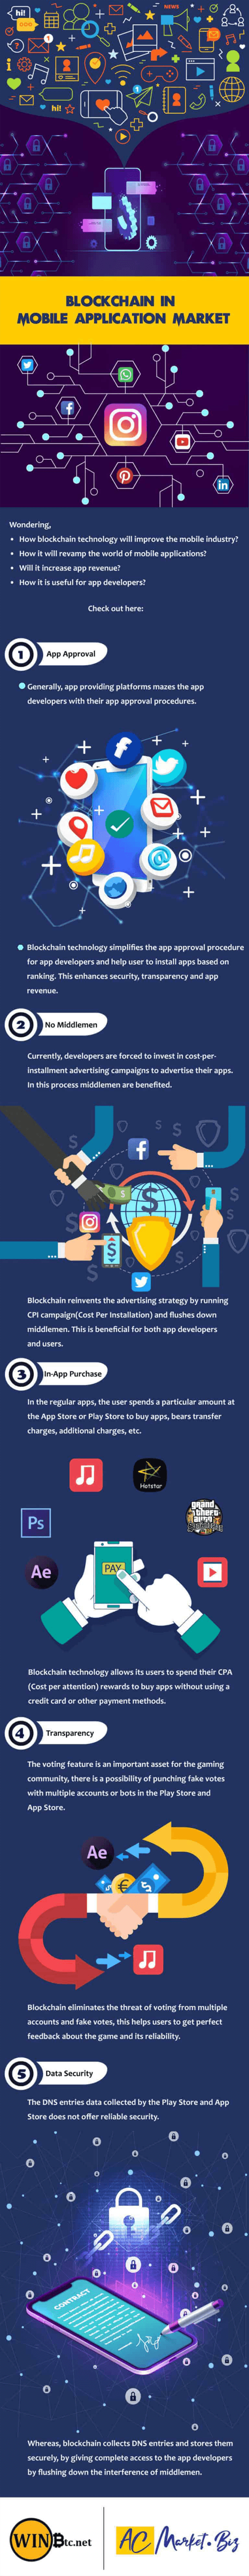 Blockchain and Mobile Apps: Why Blockchain Will Change The Market [Infographic]